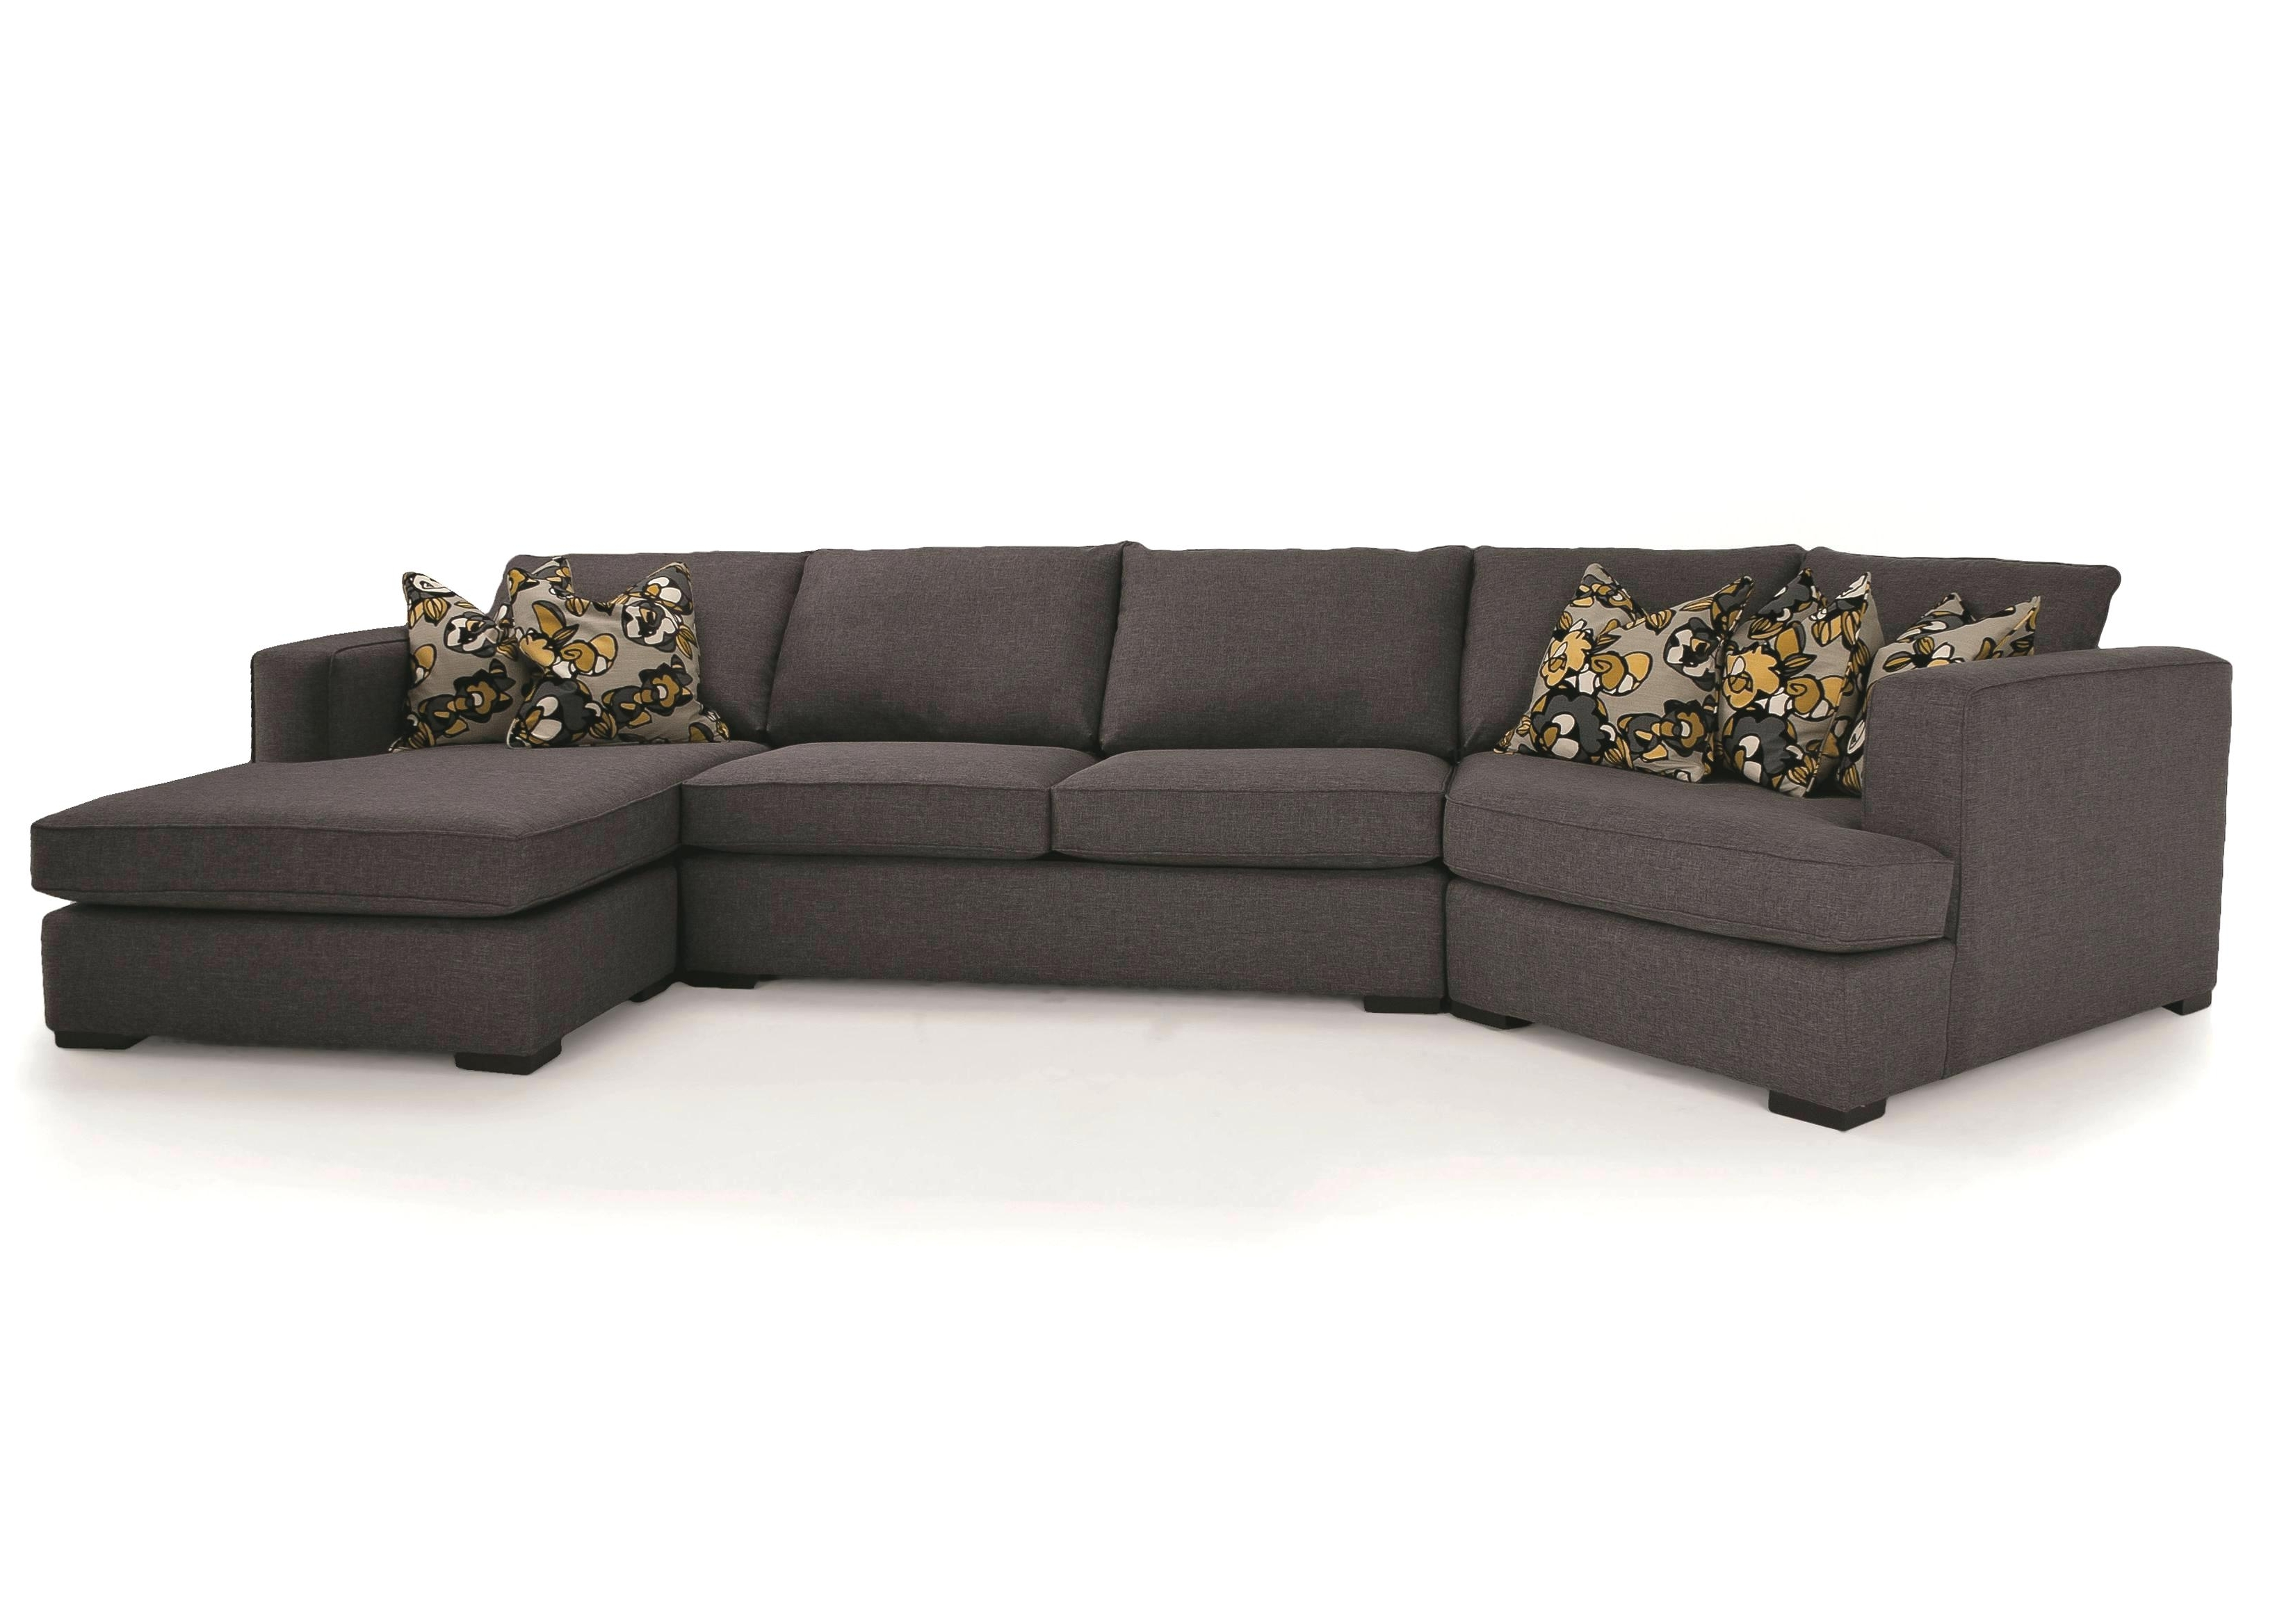 Preferred Amusing Angled Chaise Sofa Also Viewing Photos Of Angled Chaise Inside Angled Chaise Sofas (View 5 of 15)